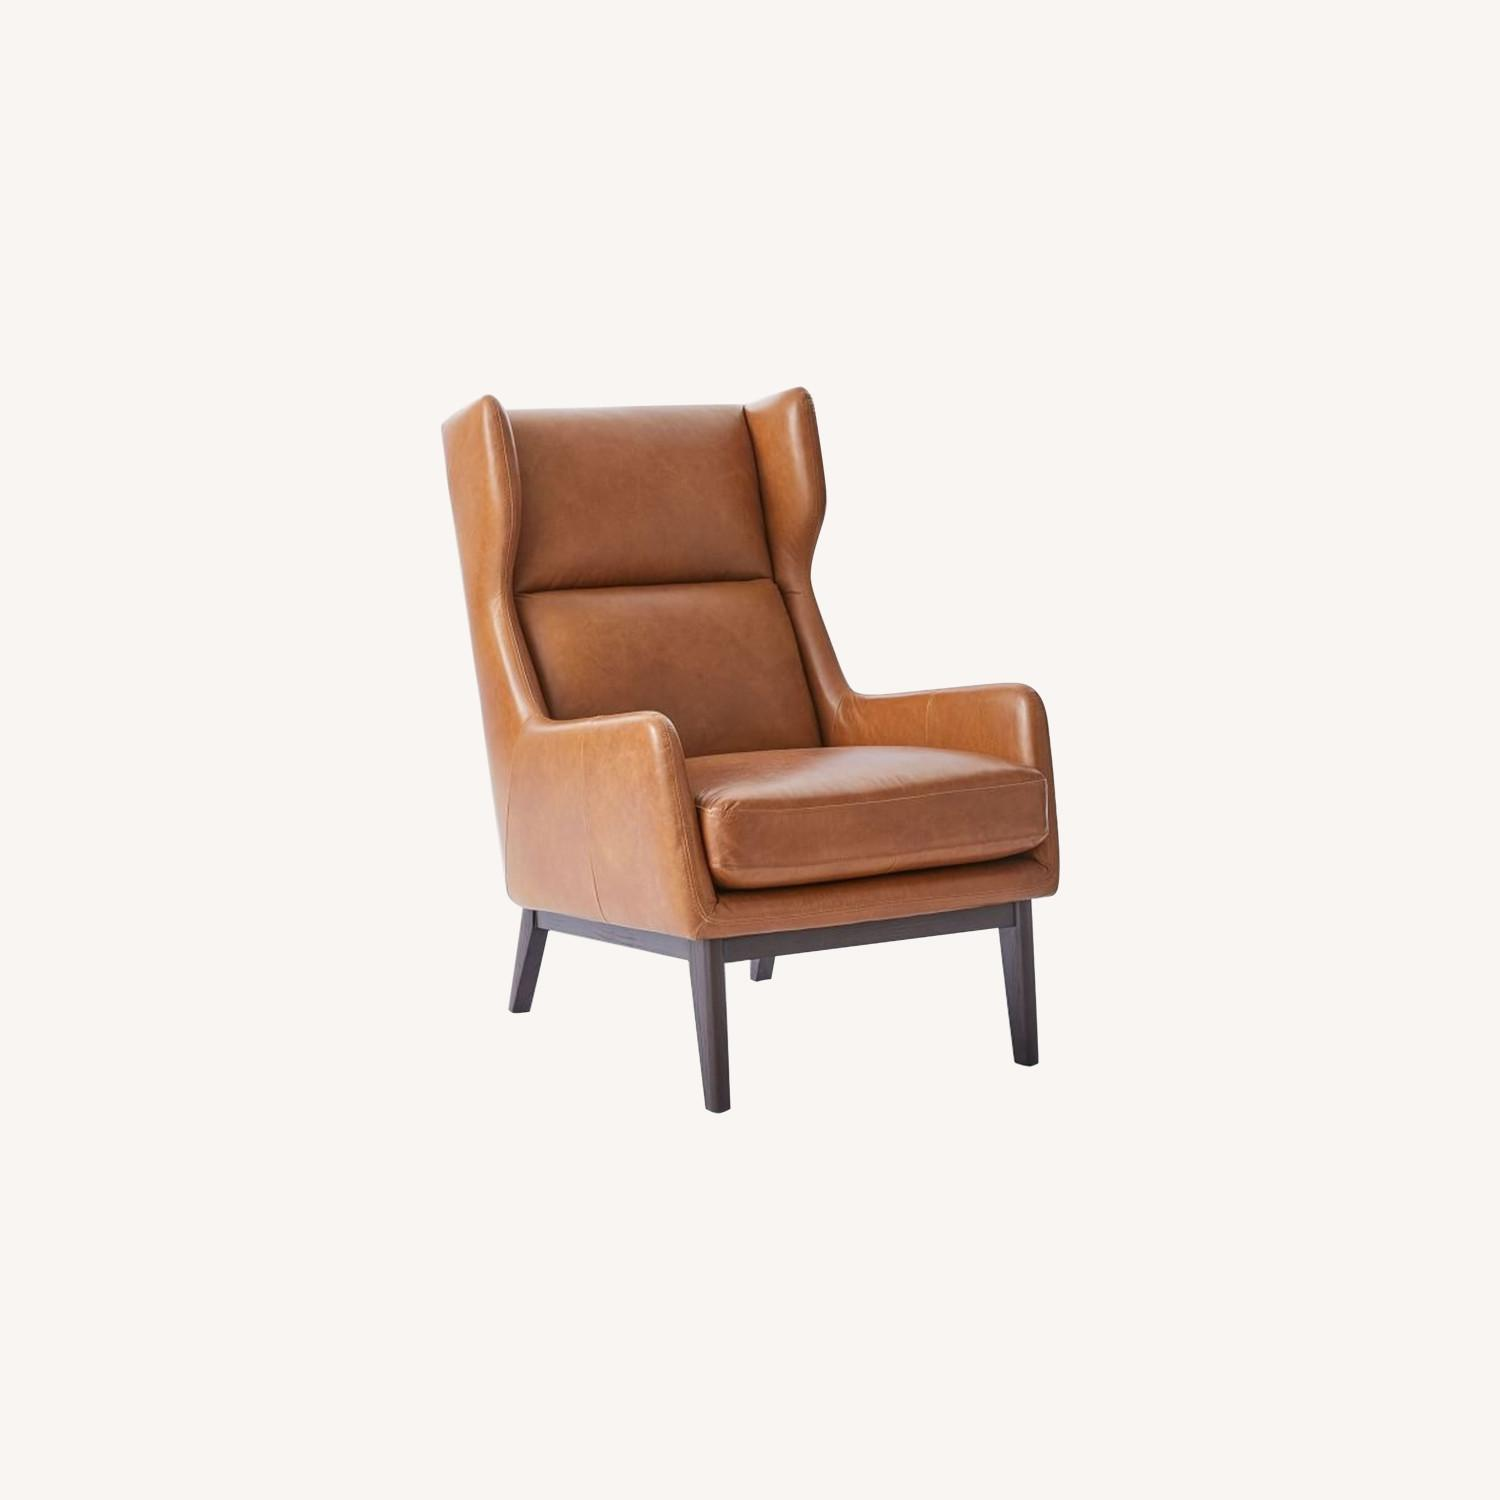 West Elm Ryder Leather Chair - image-0